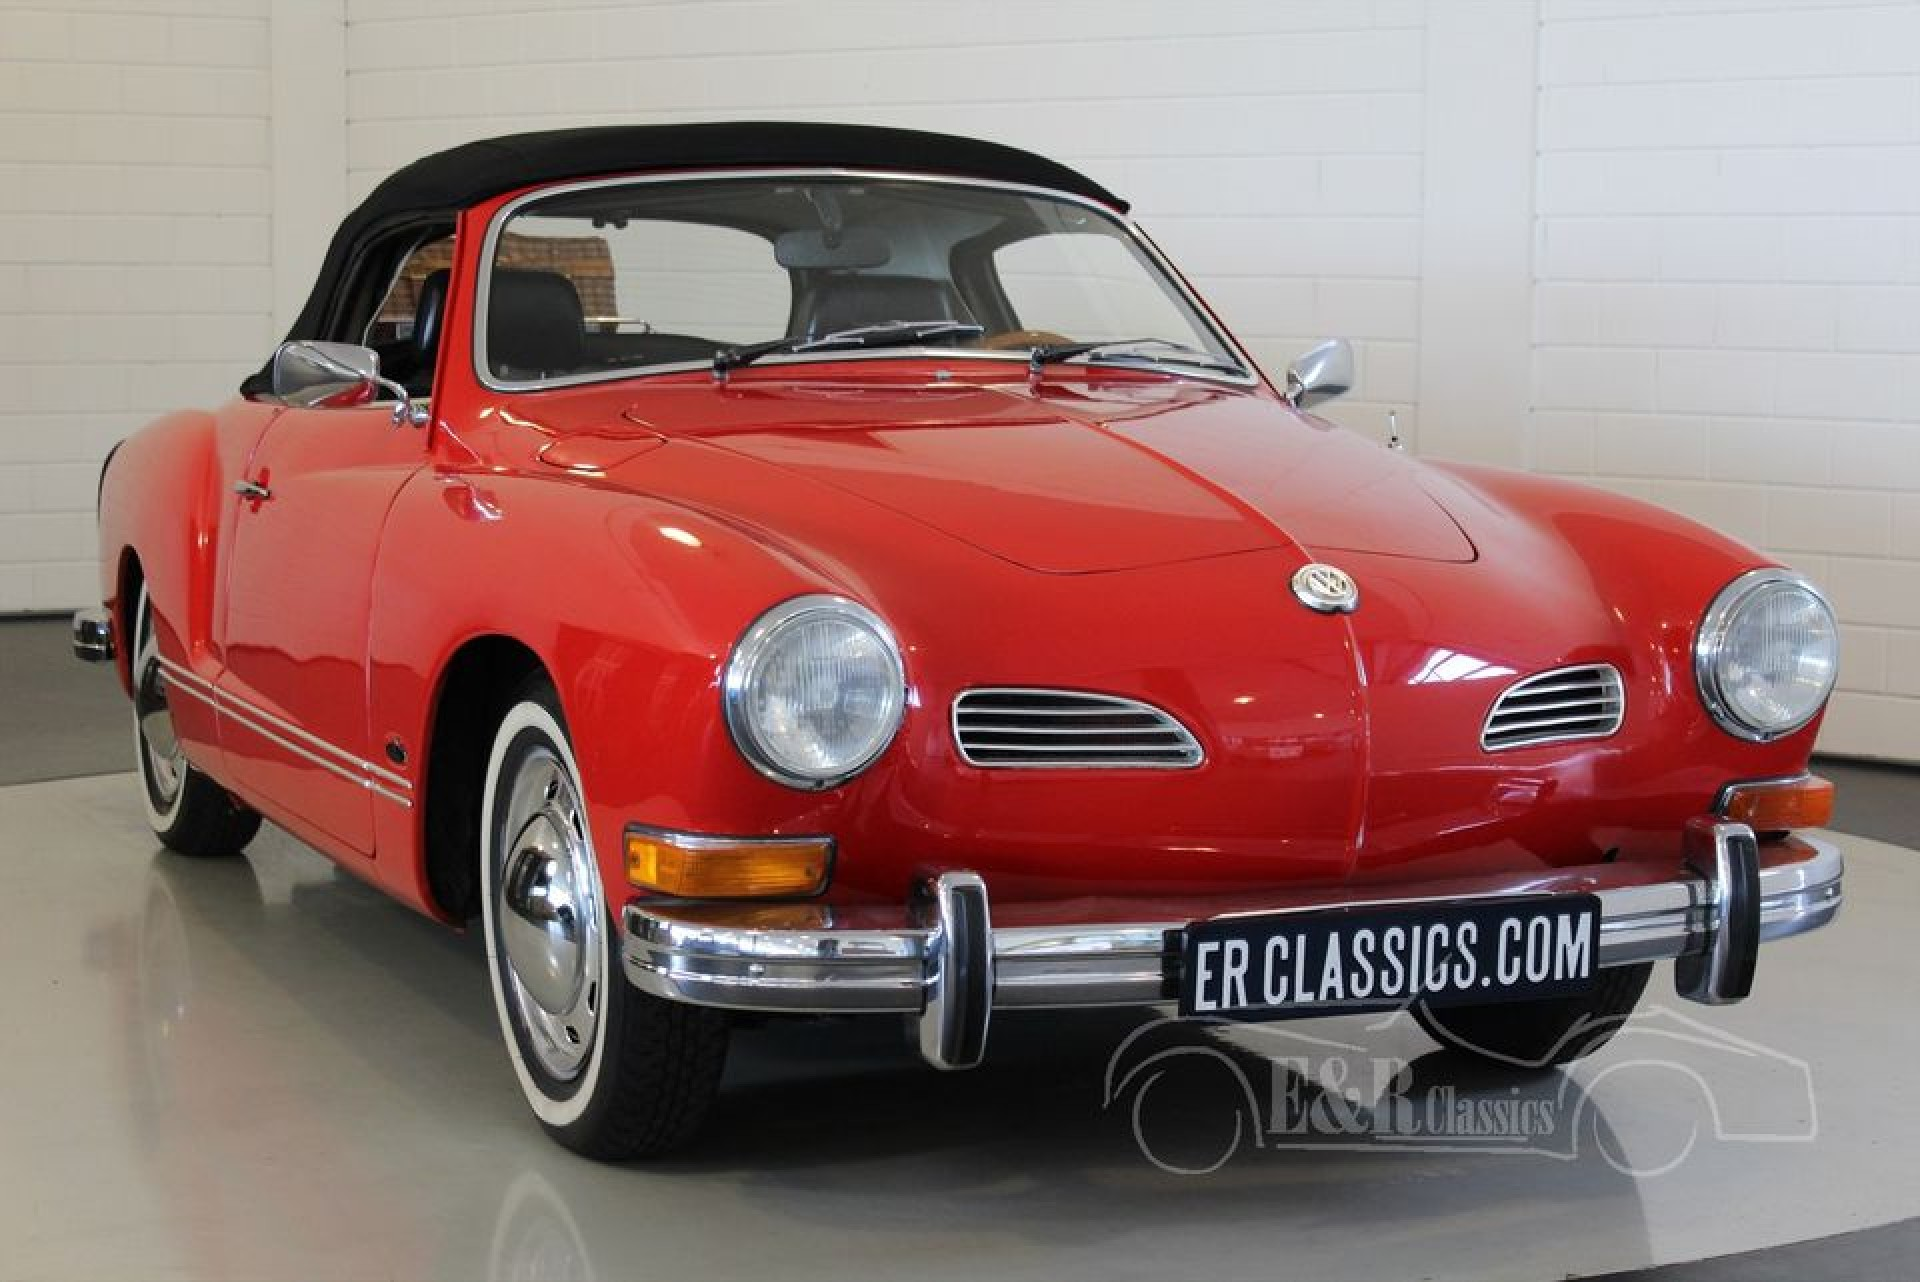 volkswagen karmann ghia 1972 vendre erclassics. Black Bedroom Furniture Sets. Home Design Ideas